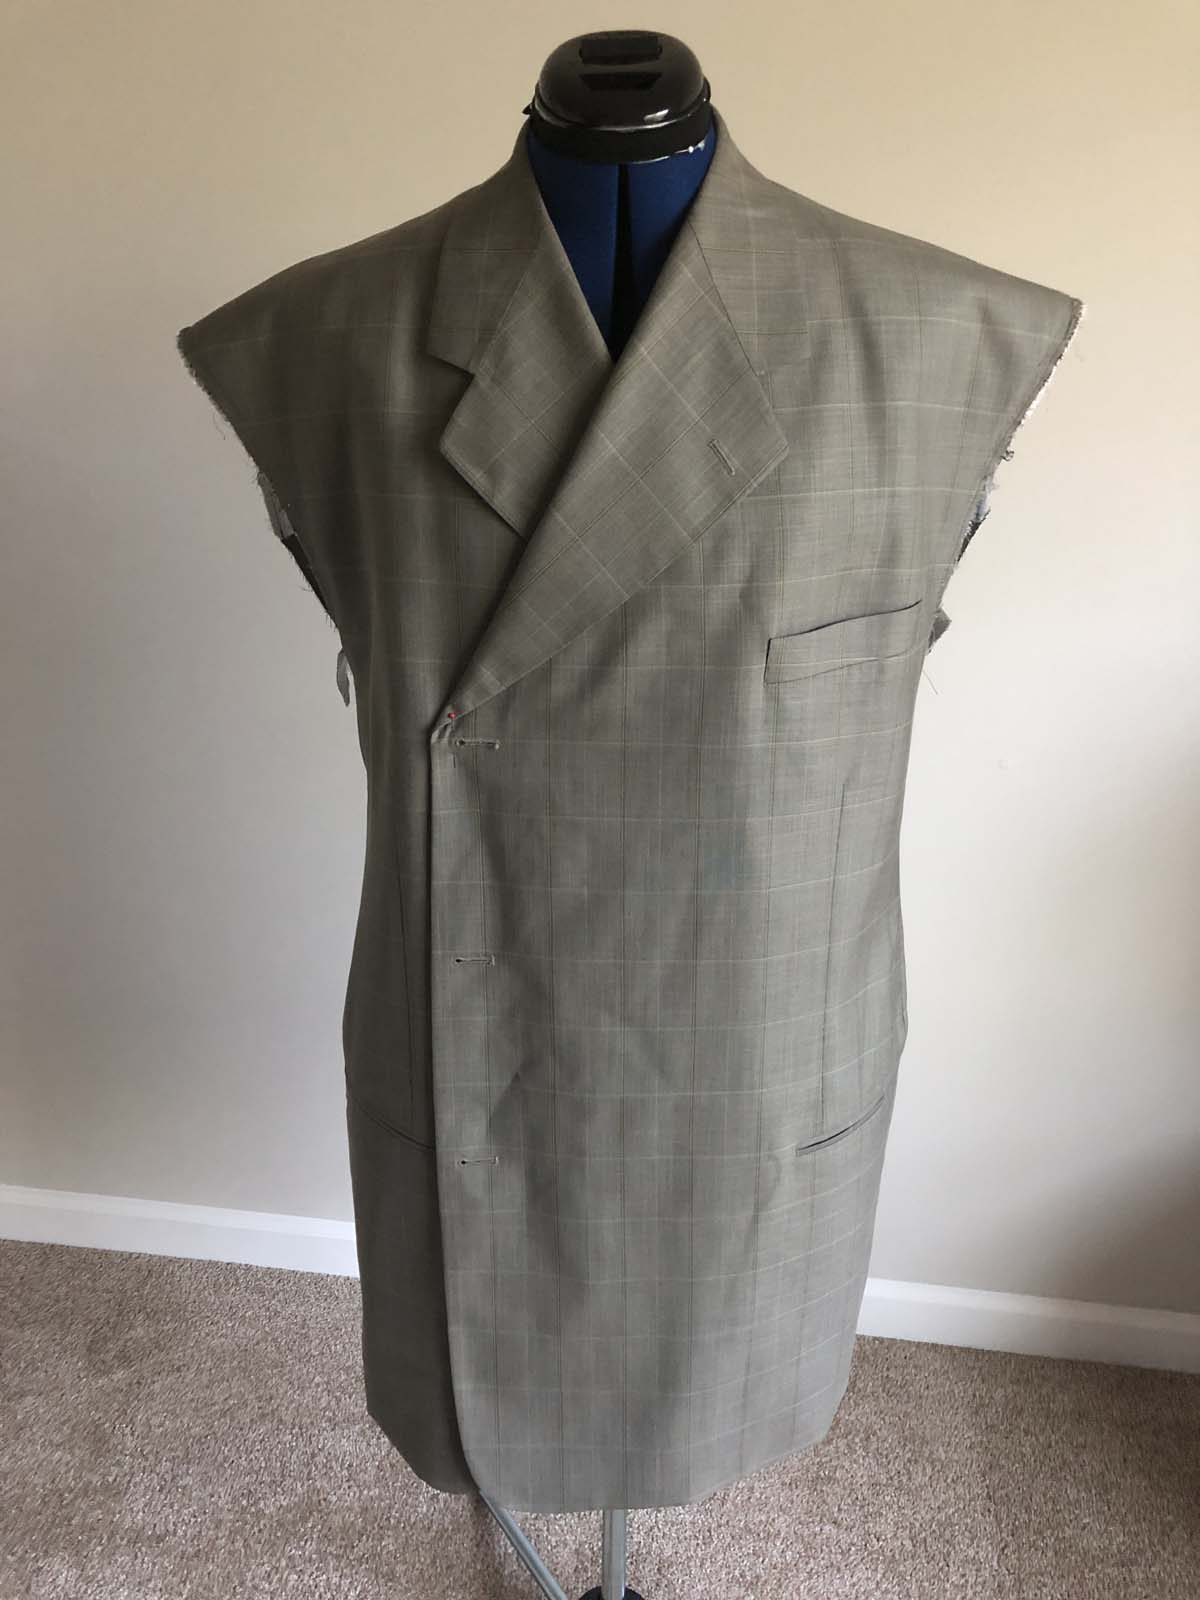 check the fit of the jacket before adjusting the lining